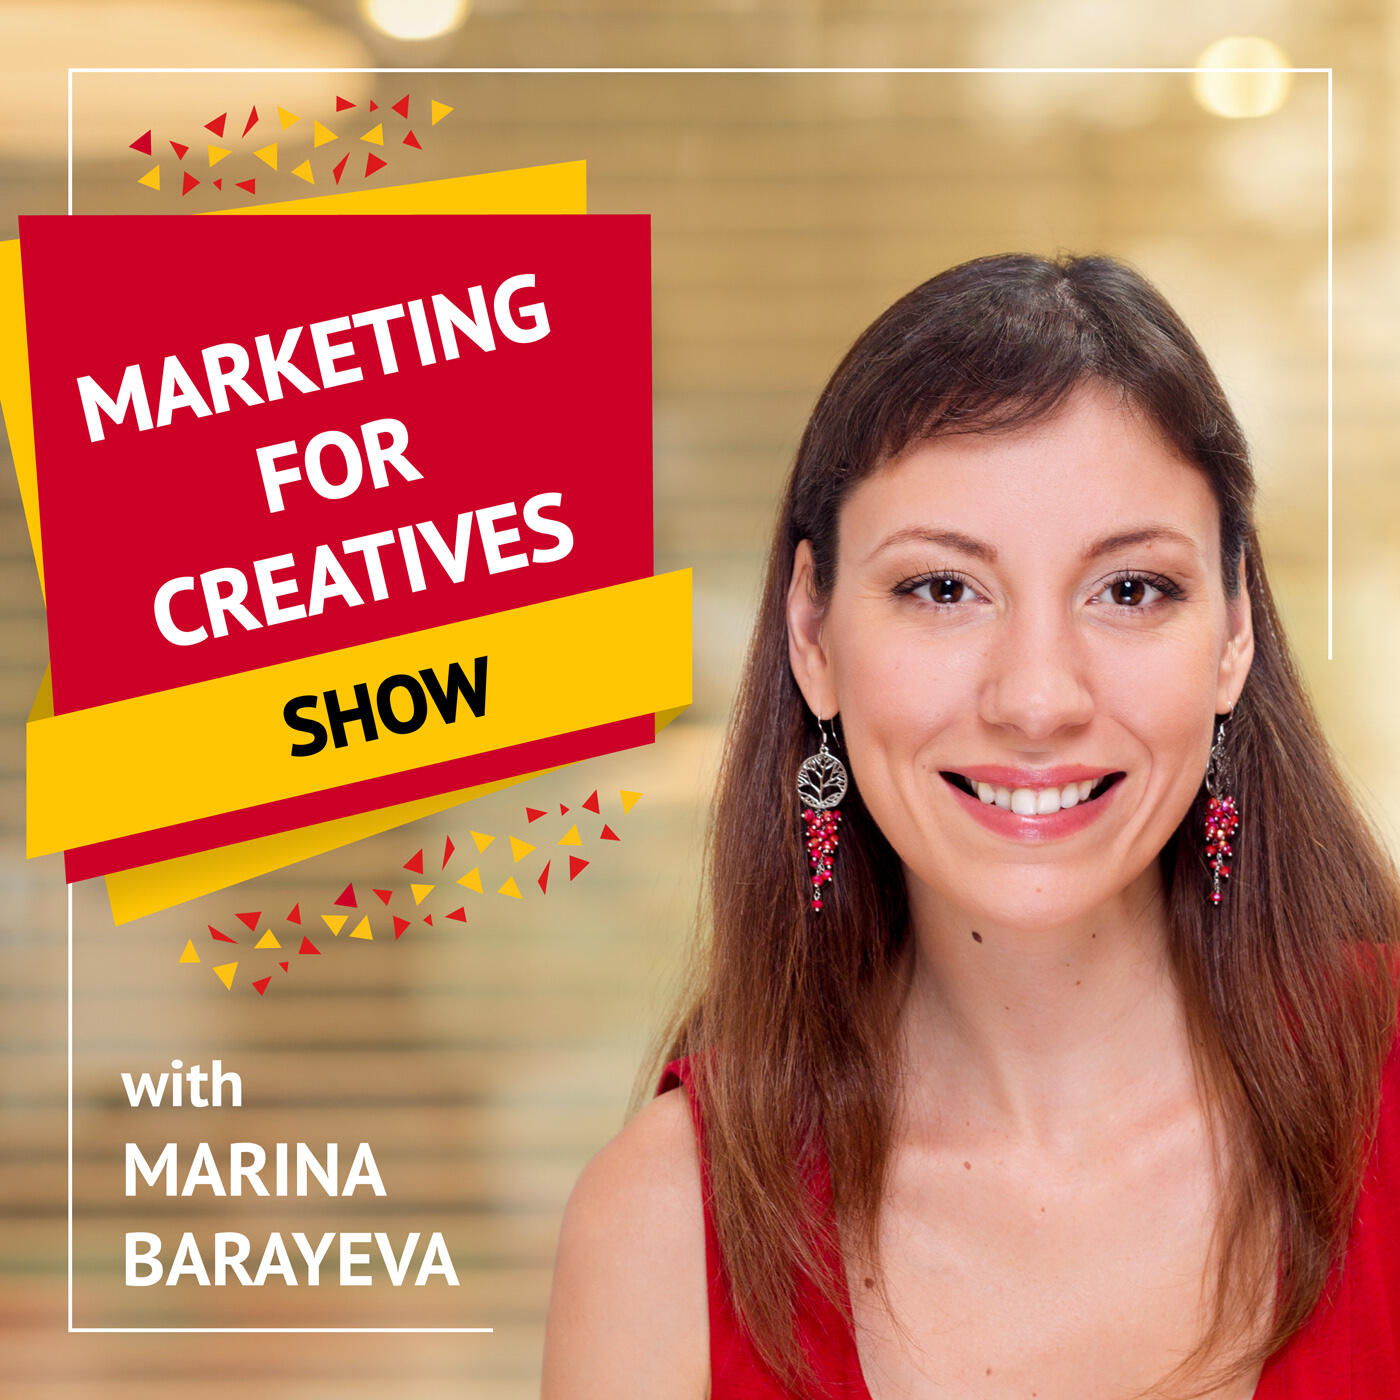 Marketing for Creatives Show   Marketing Tips for Creative Entrepreneurs and Small Business Owners